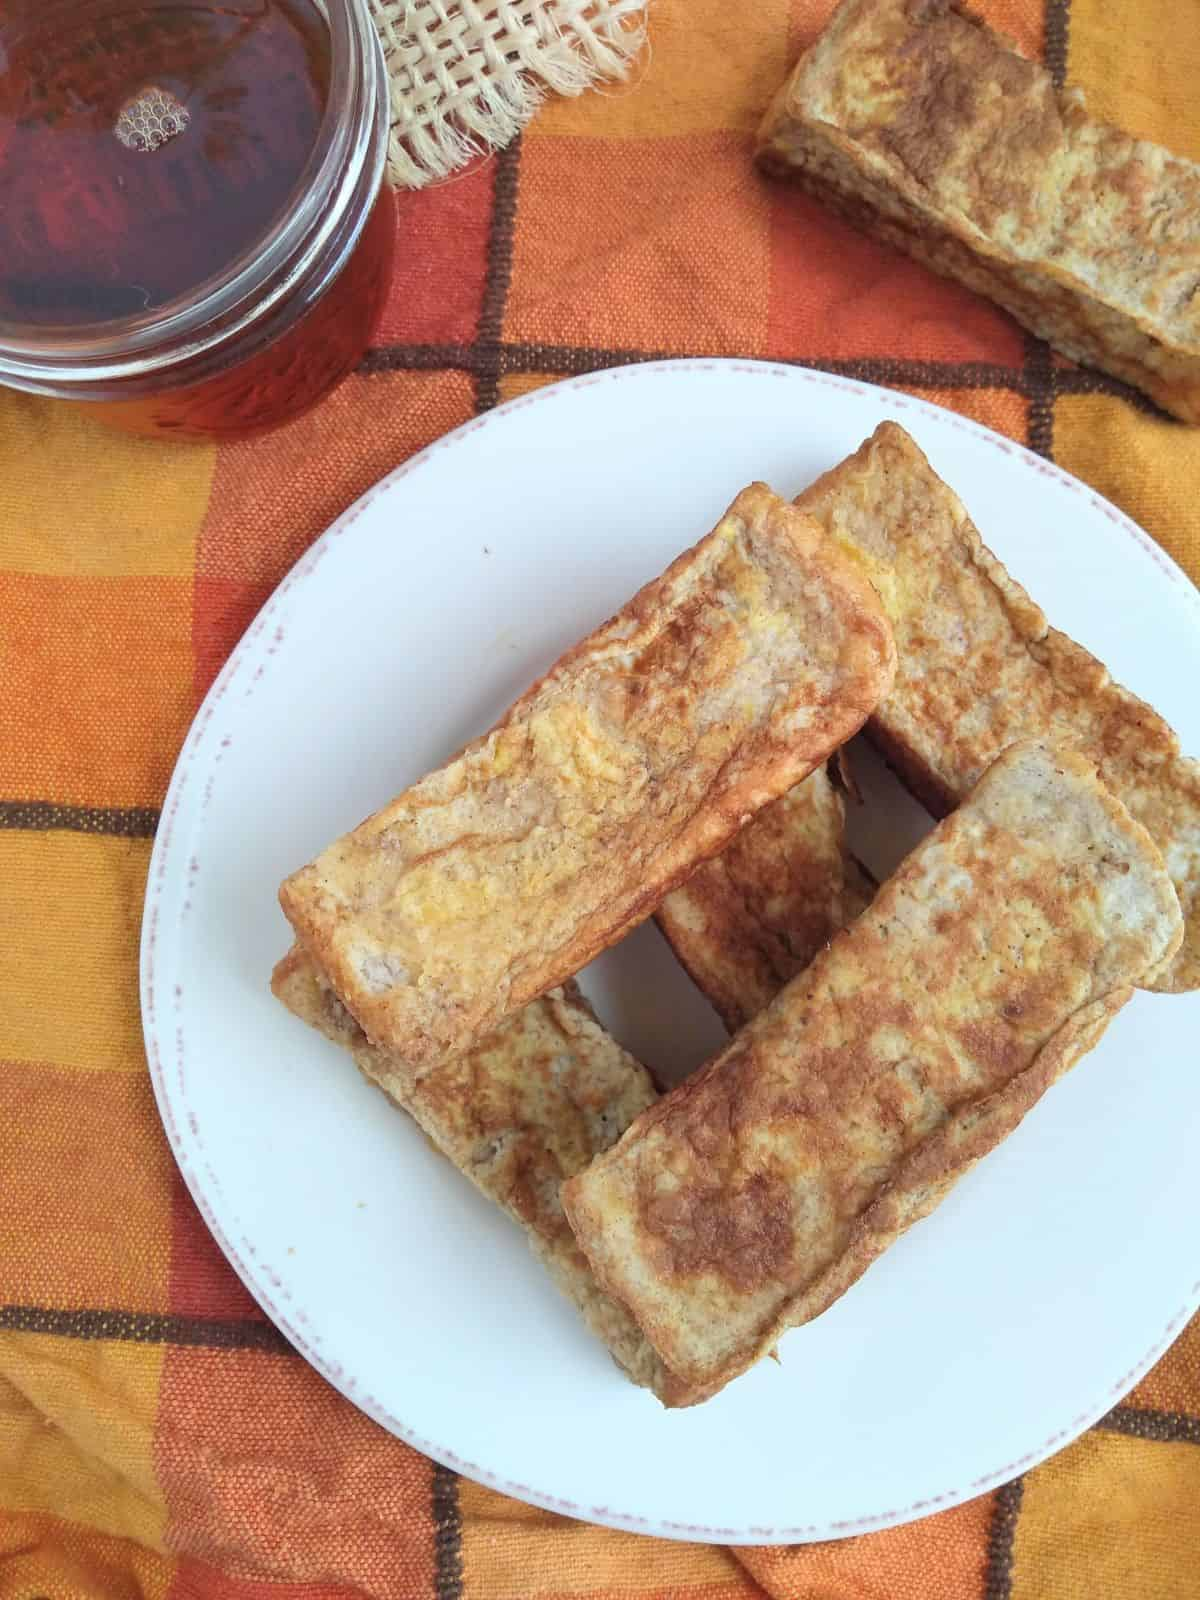 5 French toast sticks layered on a white plate with a orange-yellow-red plaid towel underneath. A jar of maple syrup next to it sitting on a piece of burlap